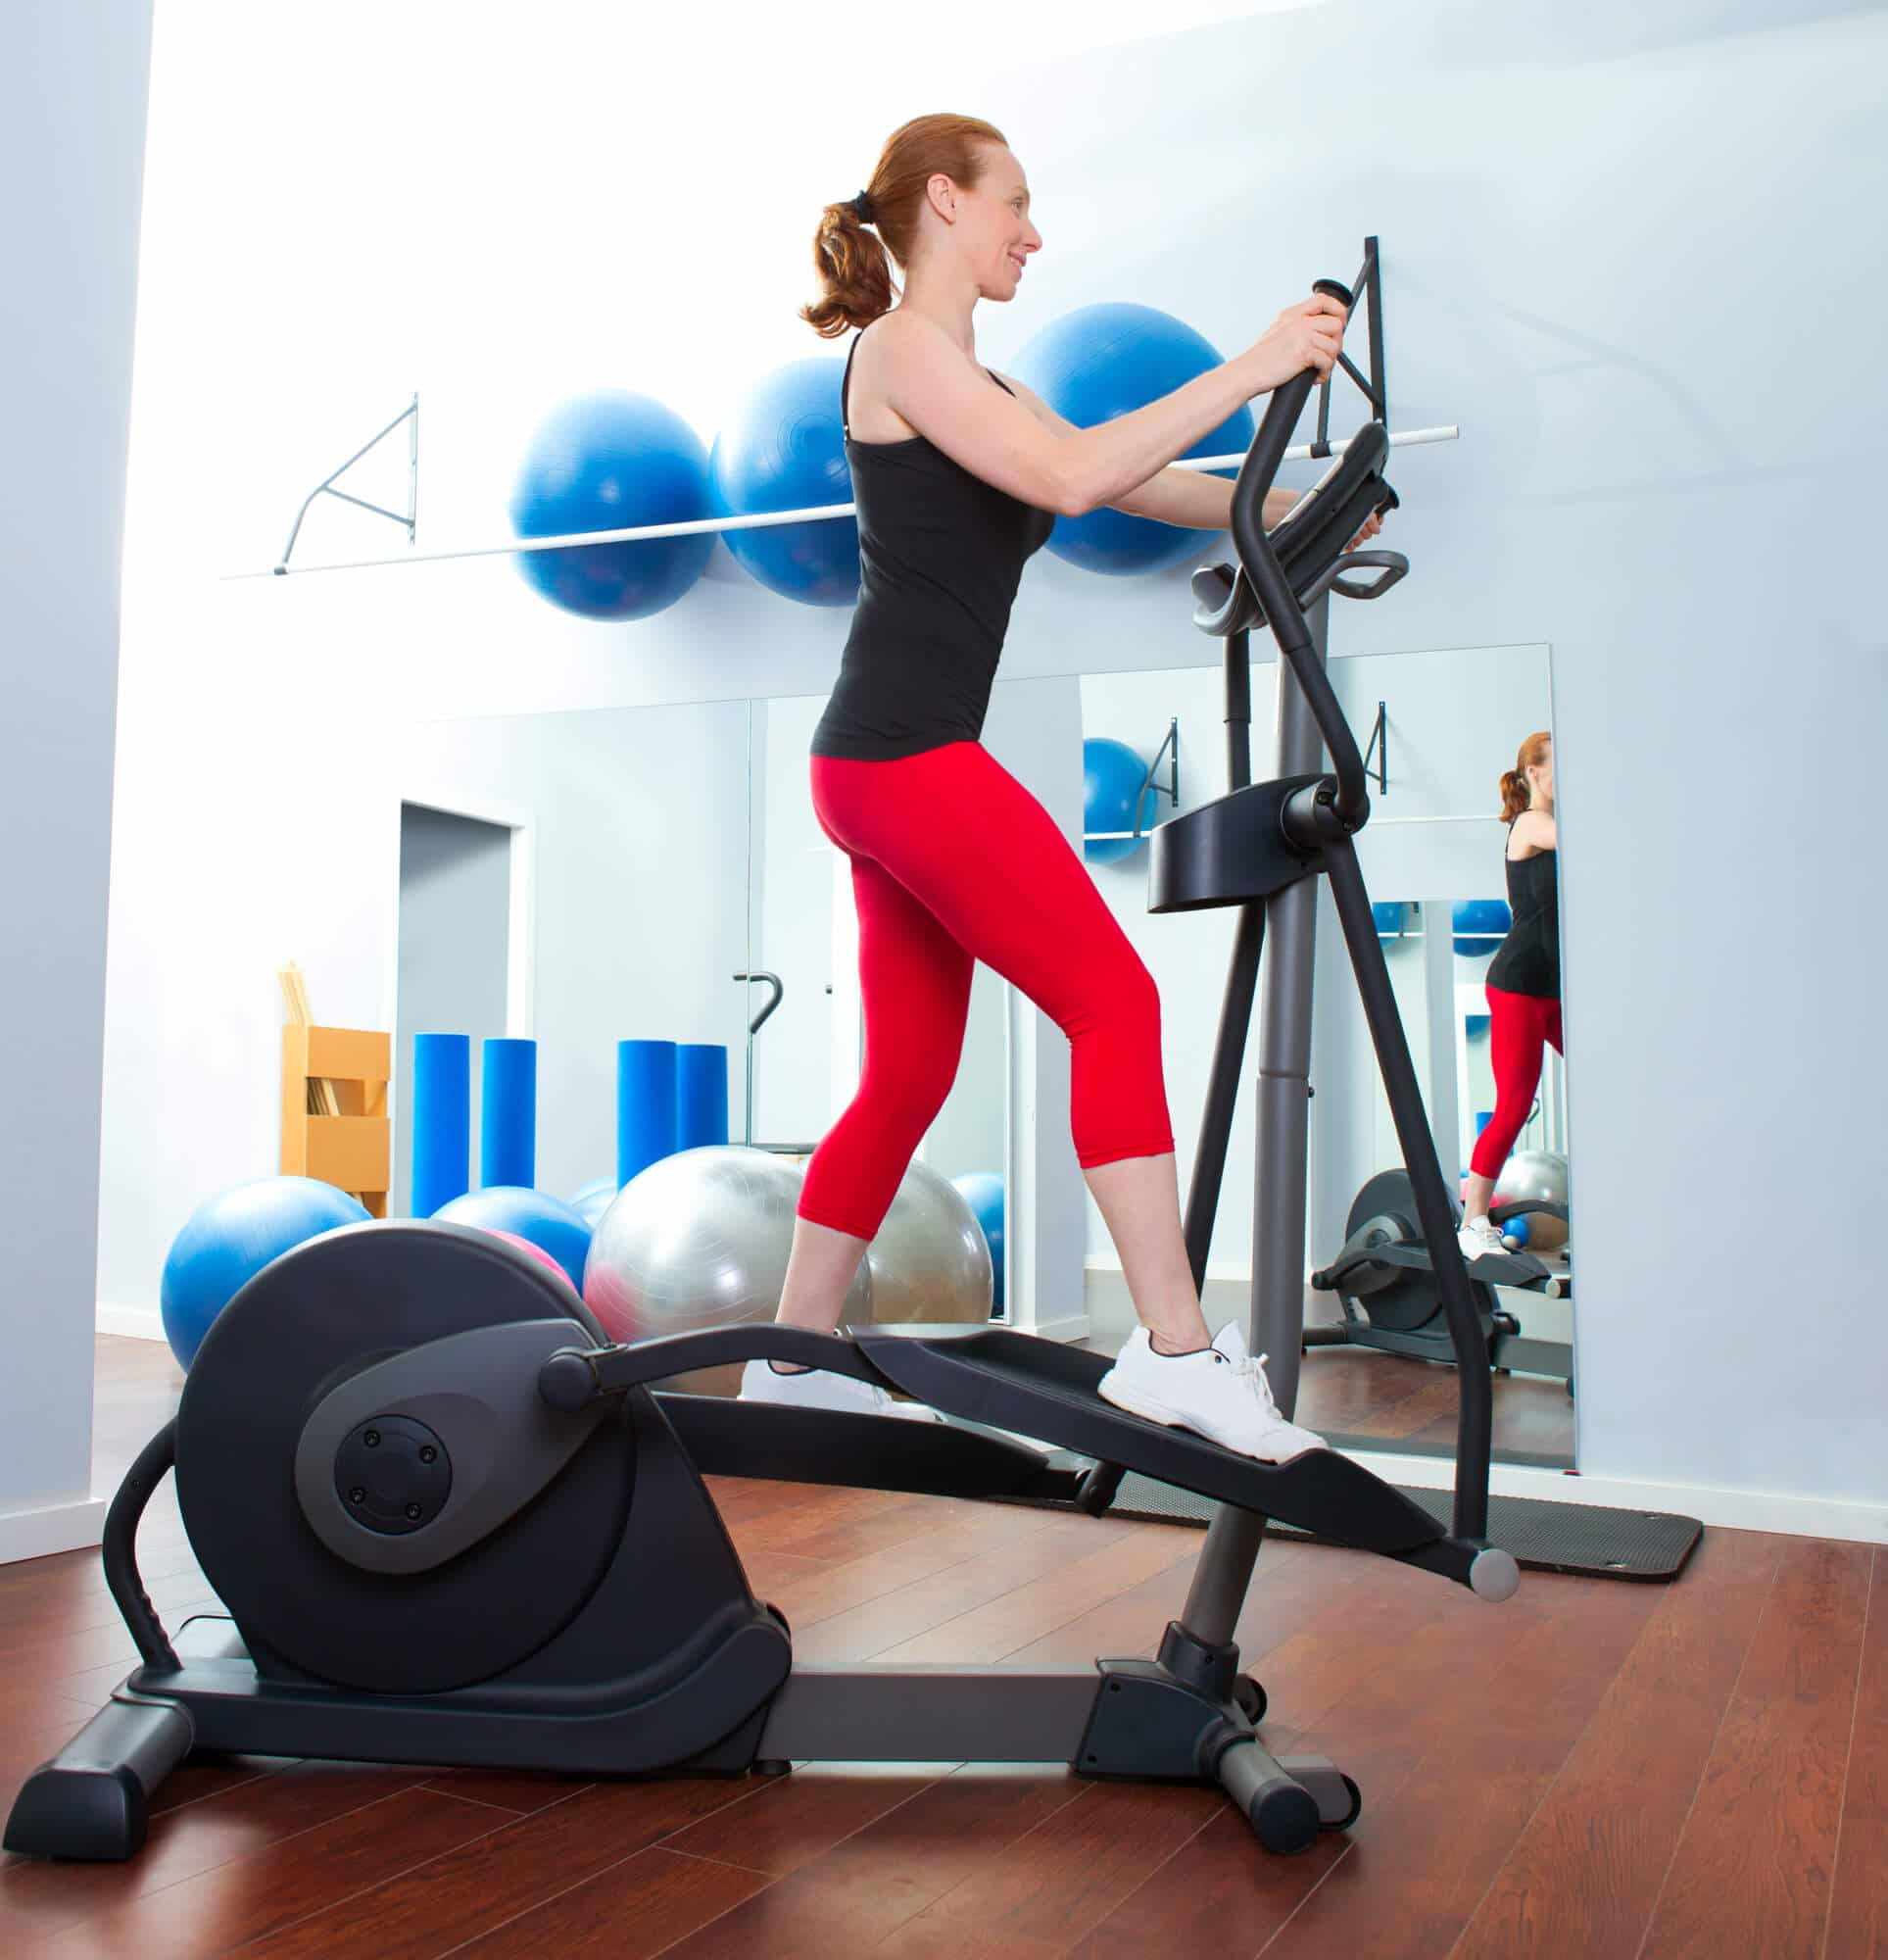 best exercise machine to strengthen knees - Fitness Expo